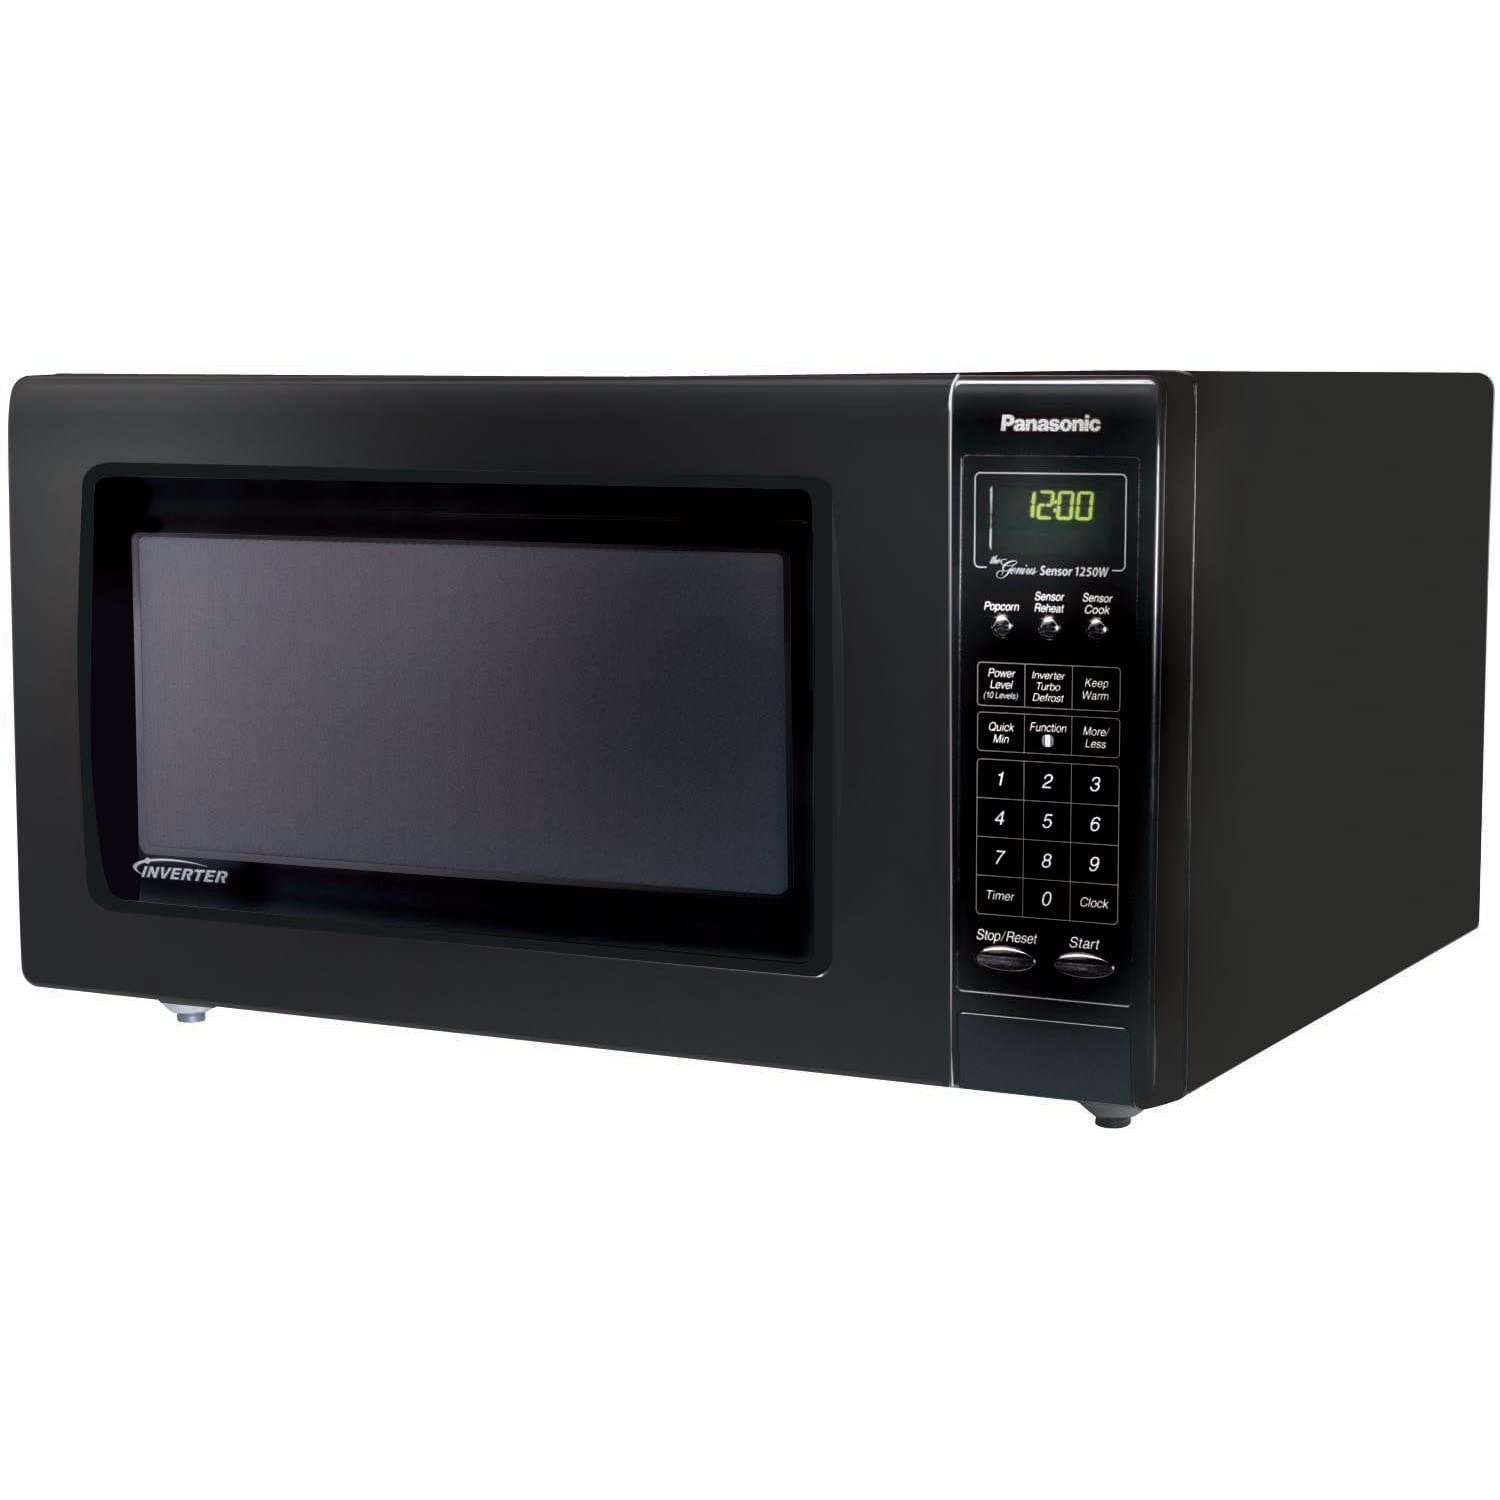 Panasonic NN-H965BF Luxury Full-Size 2.2-Cubic-Foot 1,250-Watt Microwave Oven, Black